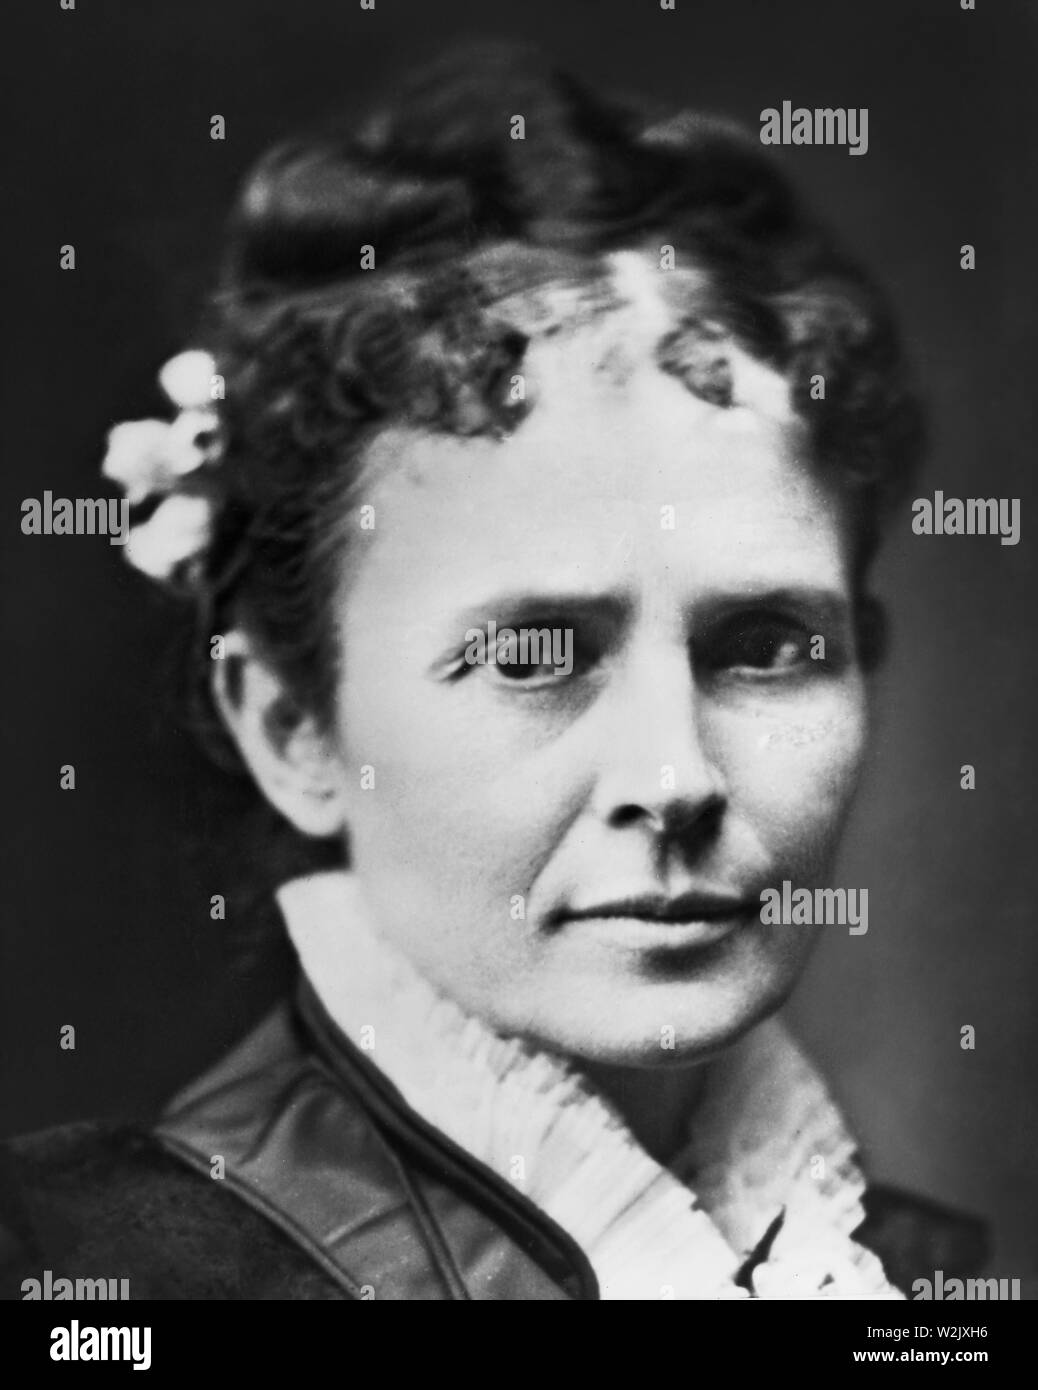 Lucretia Garfield (1832-1918), Wife of James A. Garfield, 20th President of the United States, Head and Shoulders Portrait, Photograph by Mathew B. Brady, 1870's - Stock Image